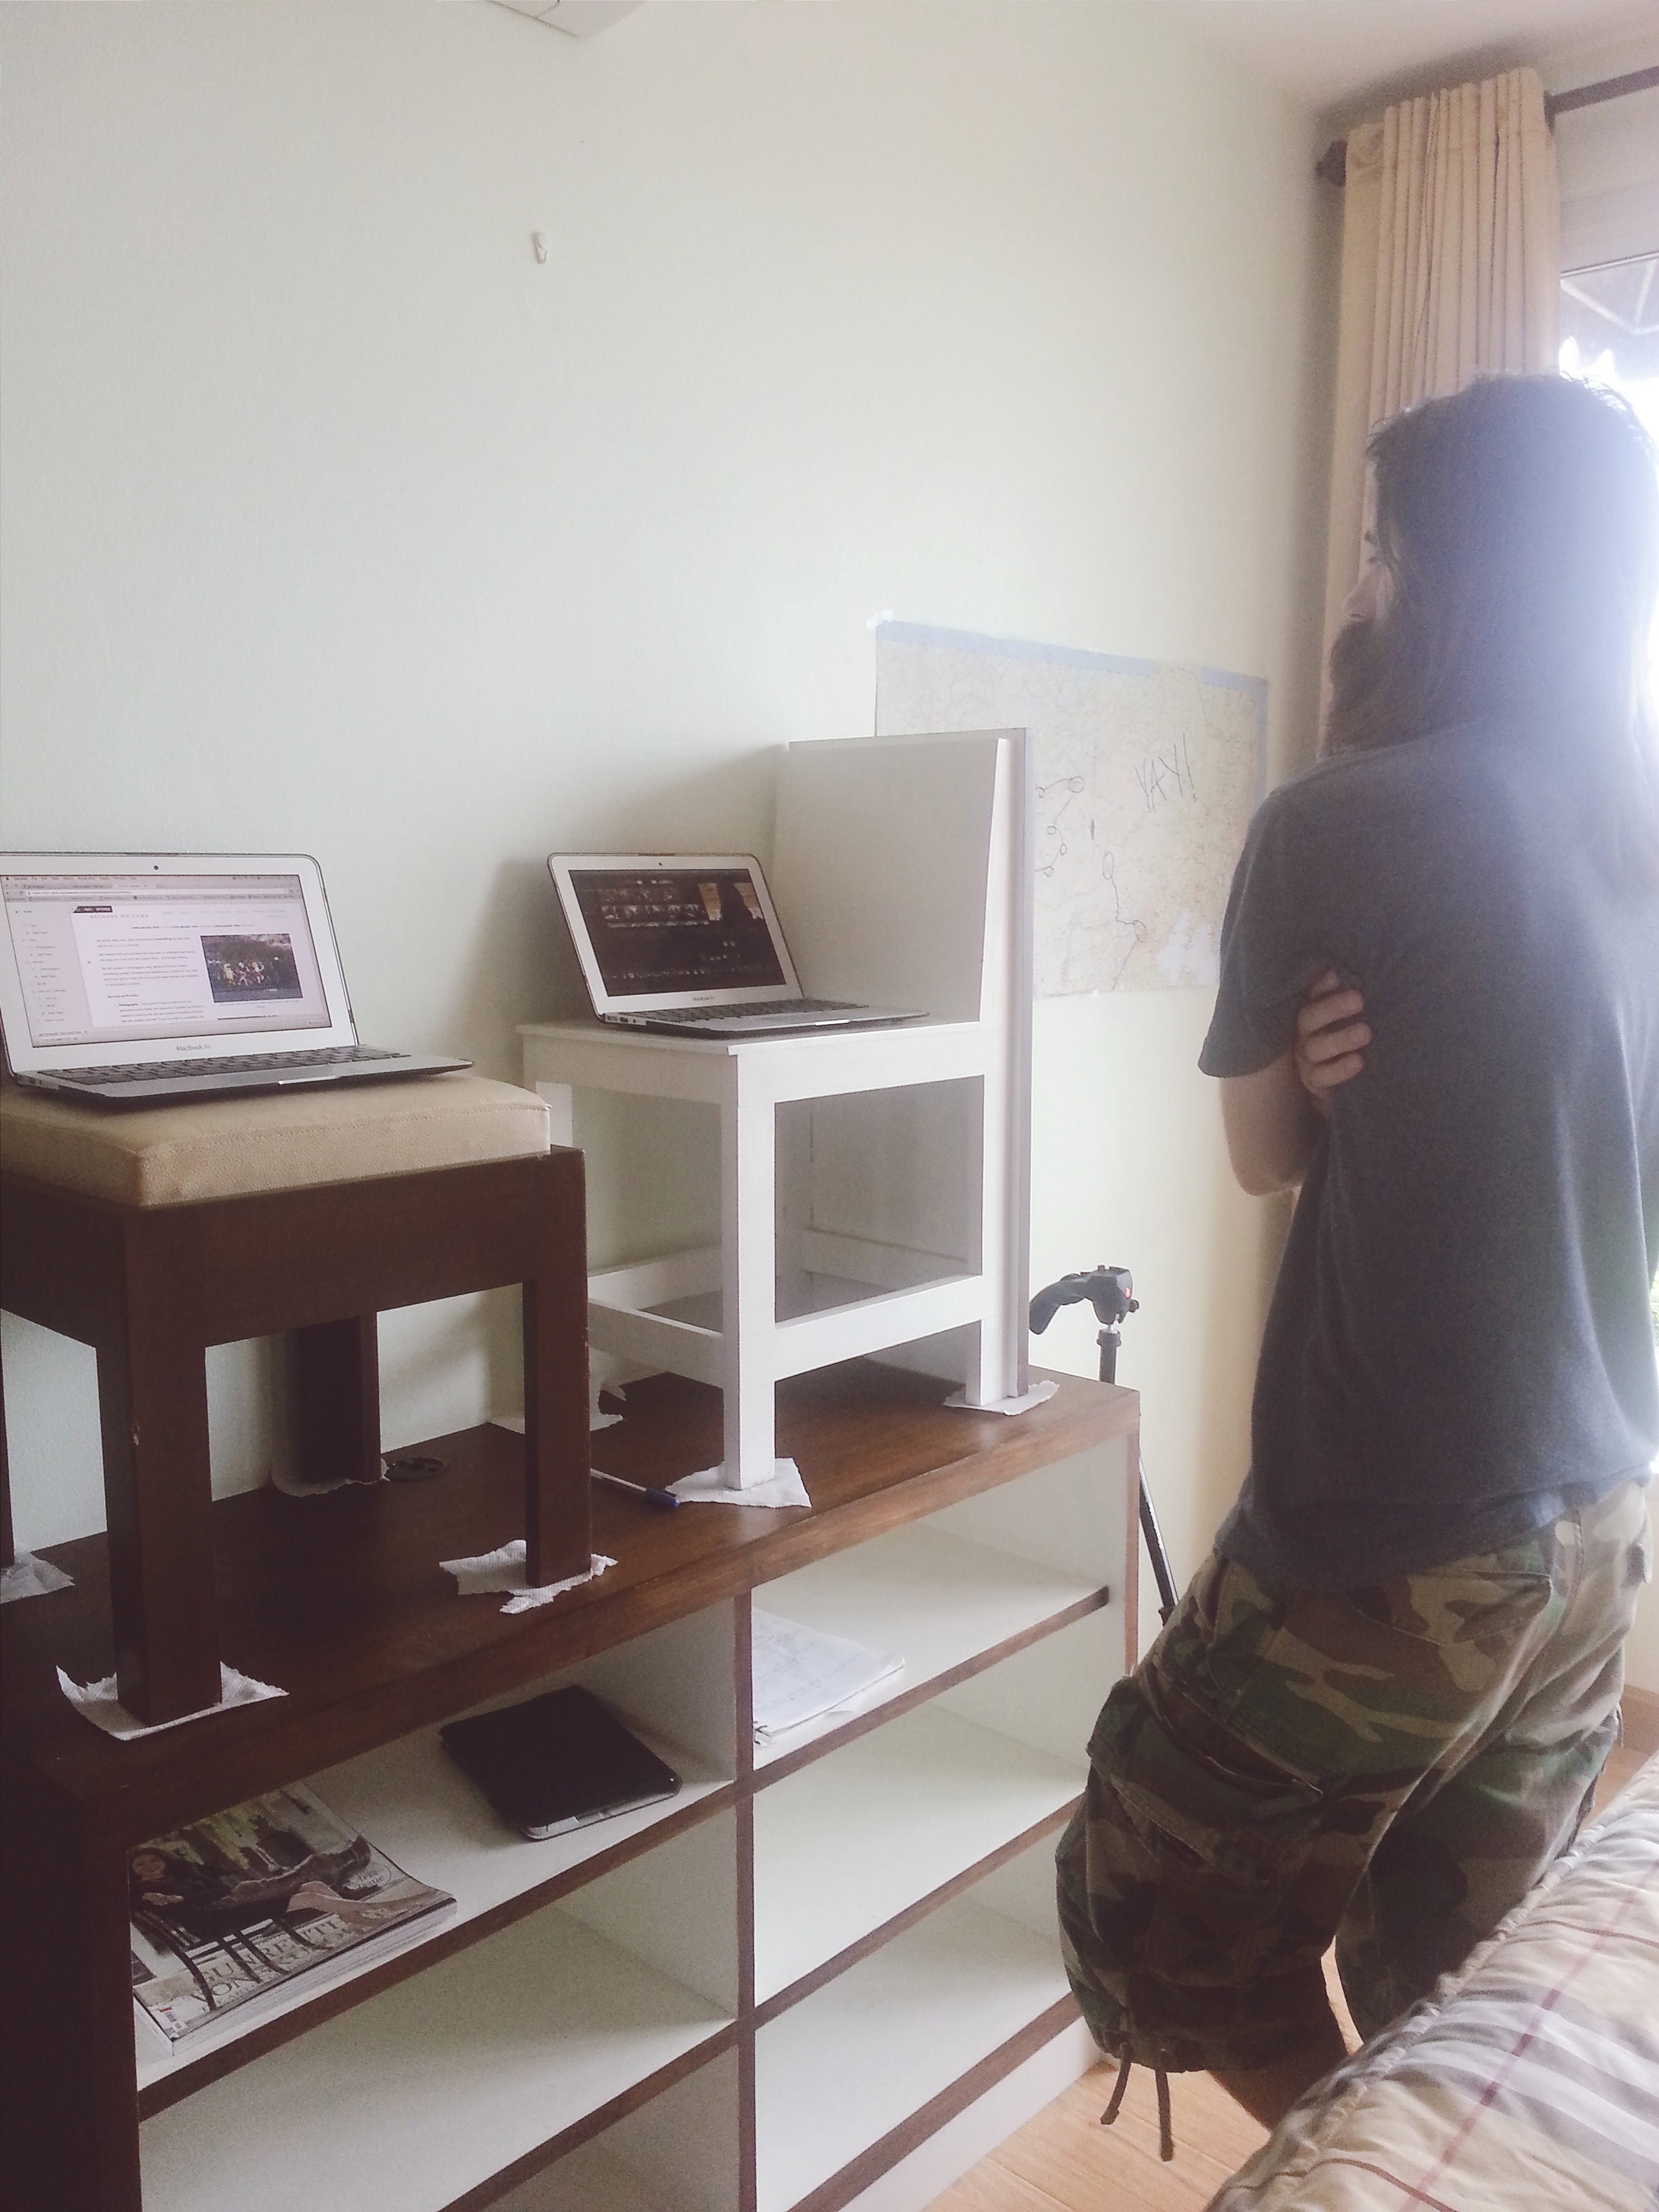 Yes, we made our own ergonomic standing workstations out of a stool and a chair we had in the apartment. Our landlord follows us on here (Hi Yuthapong!) so the paper towel legs areto show him we're taking care of the place, and that we are committed to getting our security deposit back! :) #TravelGlamlife